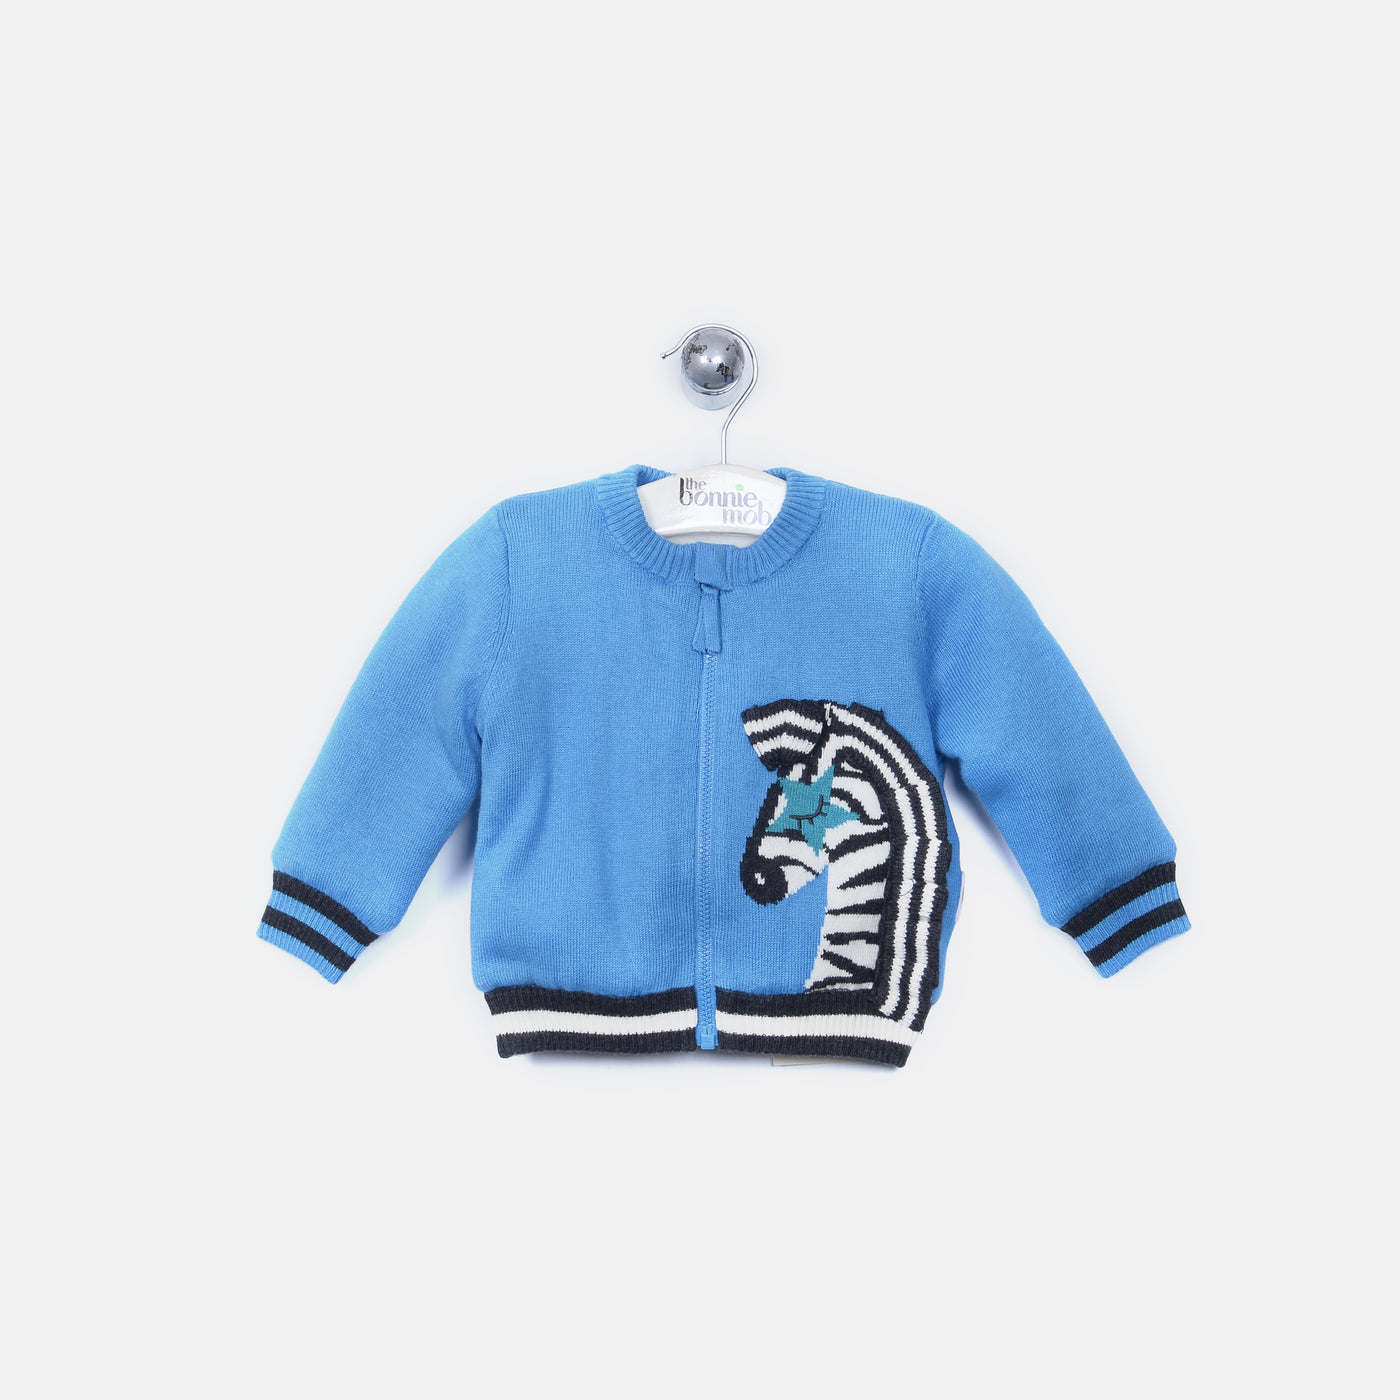 L-ZACHERY - Zebra Fringe Fur Lined Zip Cardigan - Baby Boy - Gitane blue